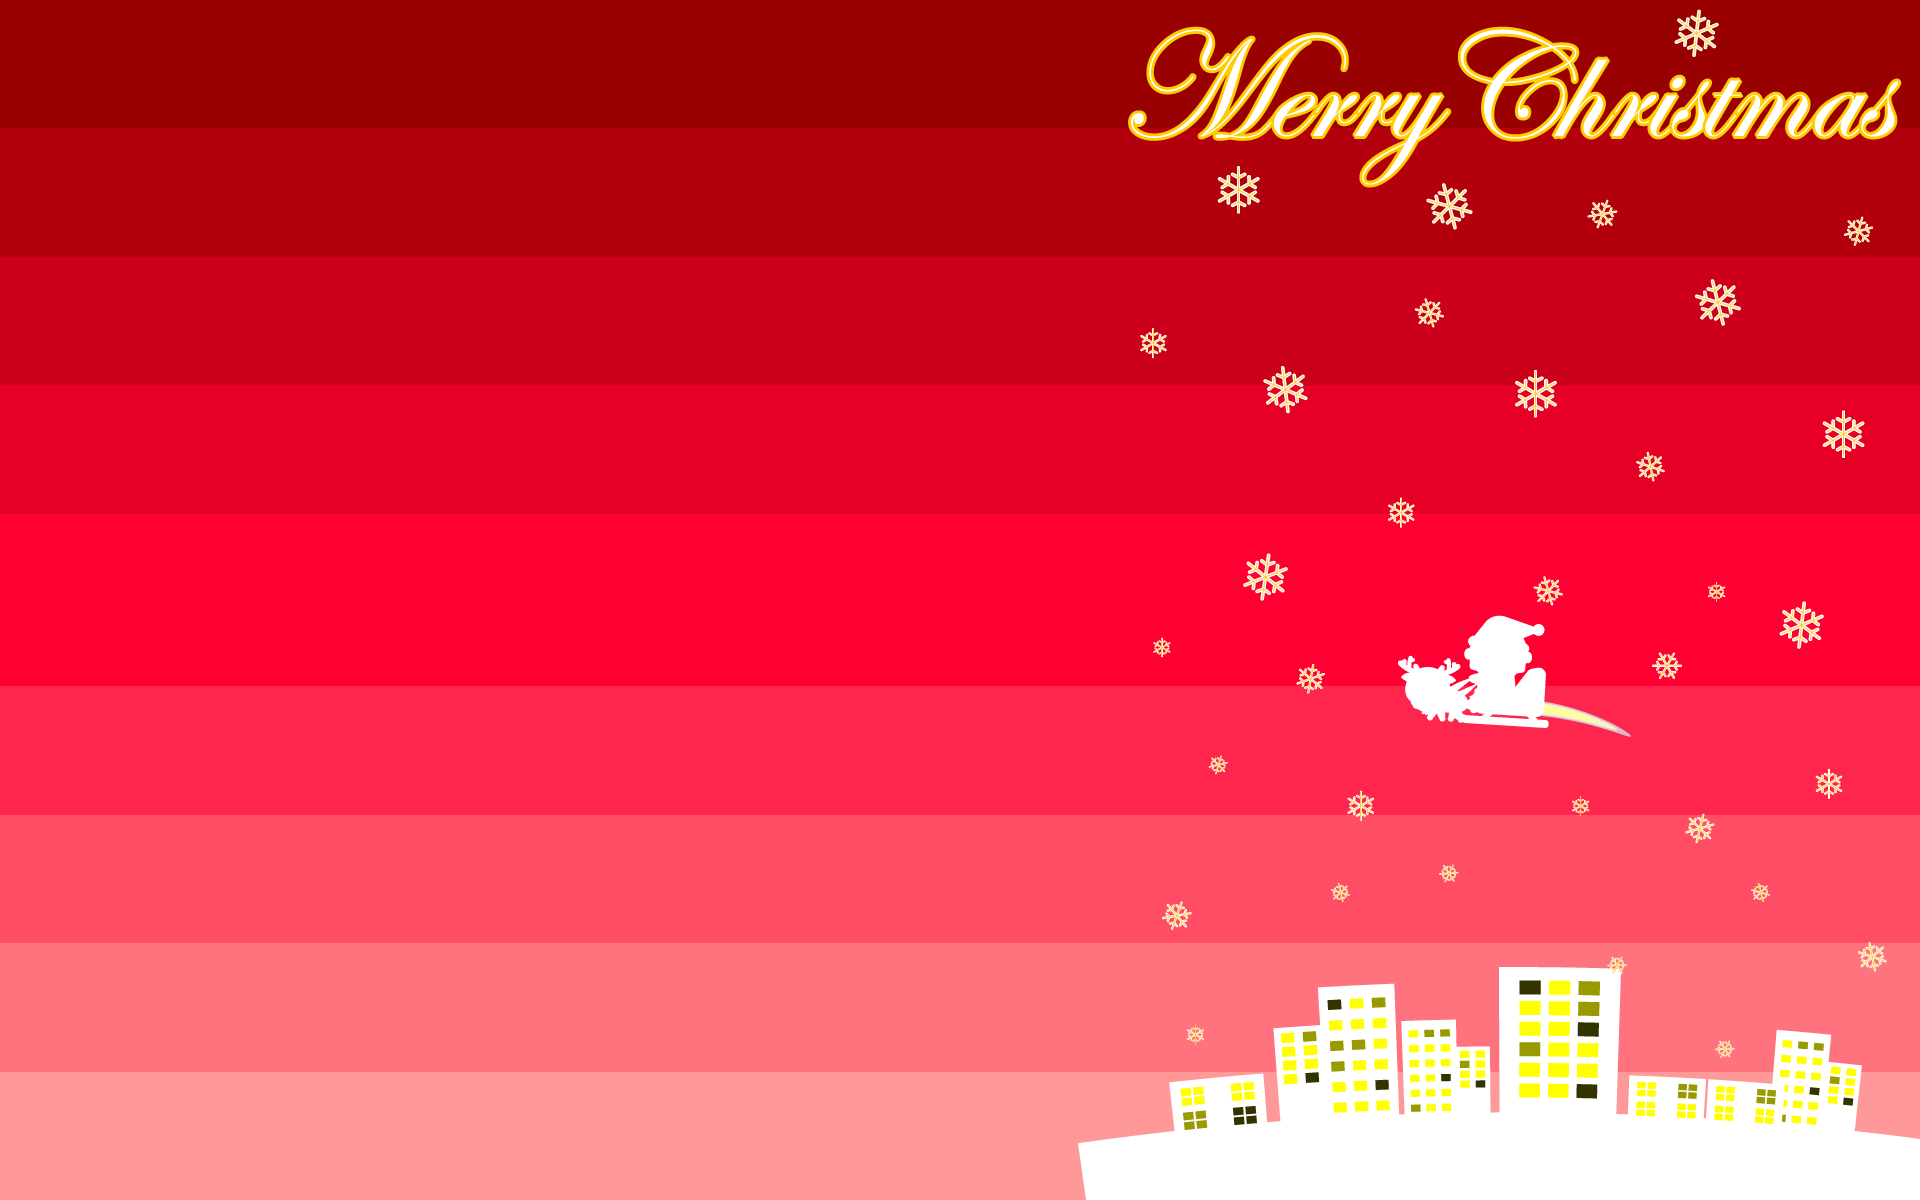 wallpaper6_christmas03w-pc